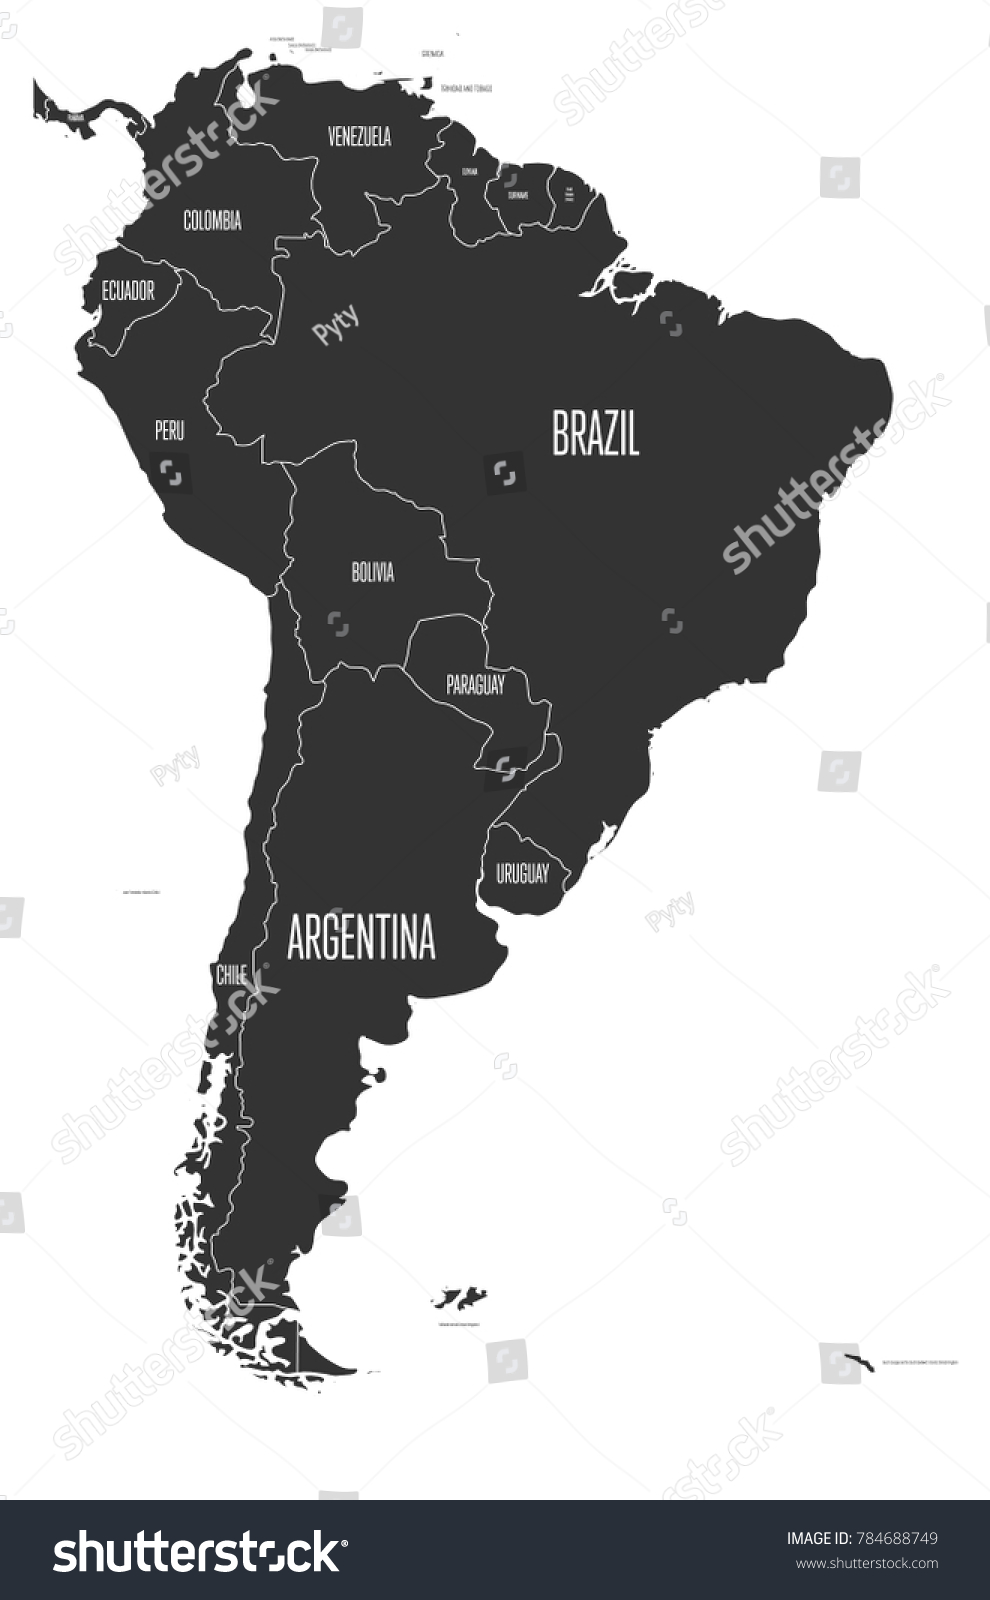 Political map south america simple flat stock vector 784688749 political map of south america simple flat vector map with country name labels in grey gumiabroncs Images